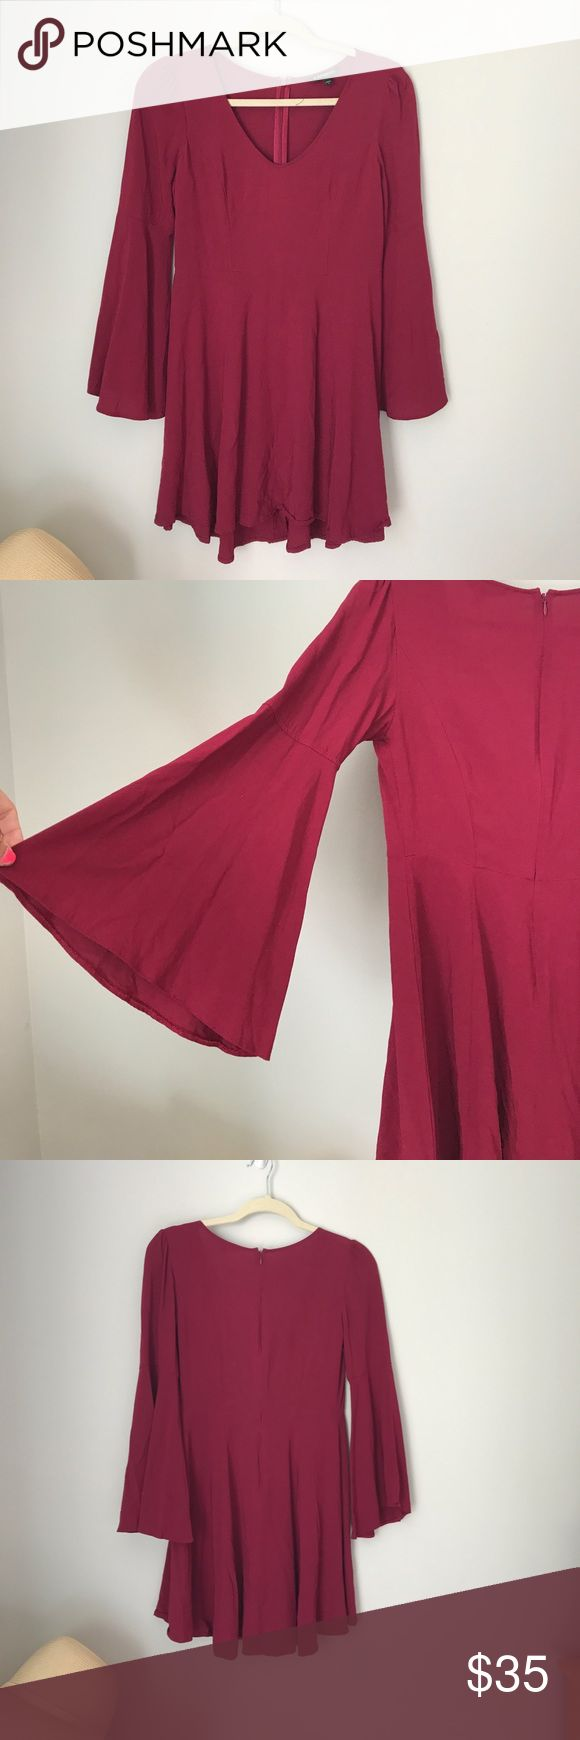 Bell sleeve skater dress Maroon color and only worn once! Thin enough for early fall and very float material! Absolutely love it but doesn't fit anymore Express Dresses Long Sleeve